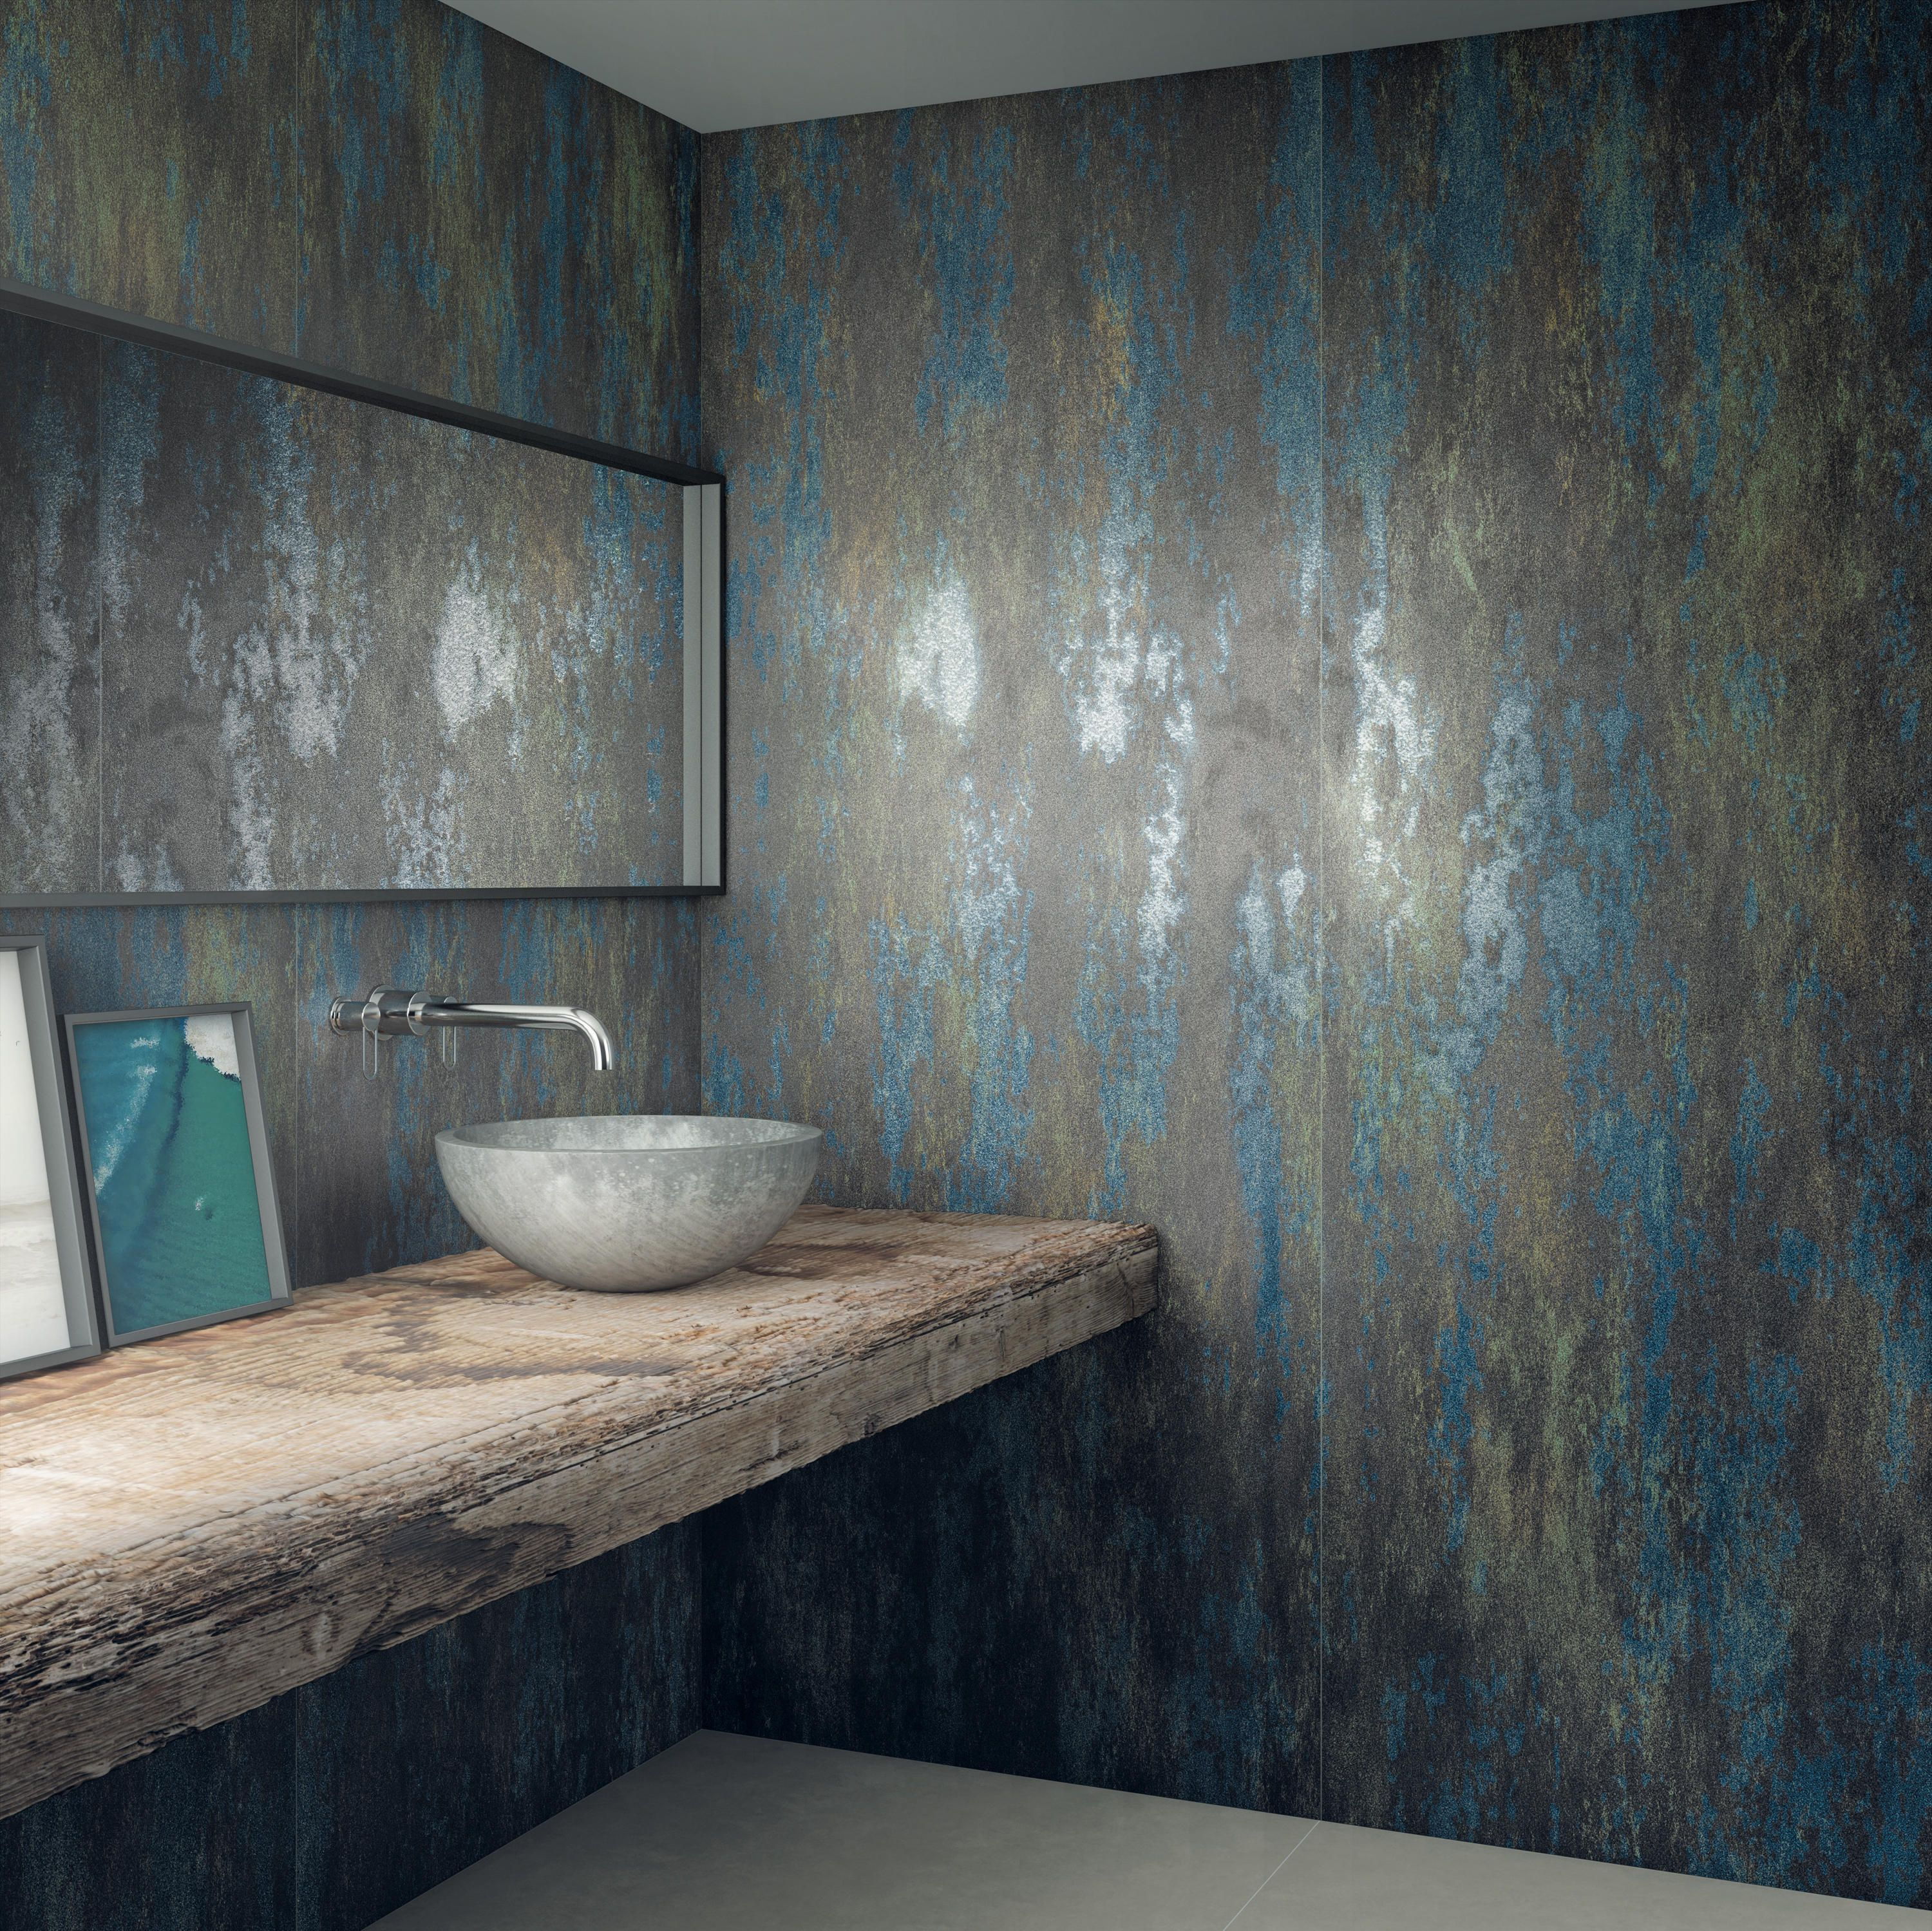 Fusion iris natural sk designer ceramic panels from inalco fusion uses digital printing technology to decorate the surface of the collections large format tiles in a tribute to traditional ceramic tiles with dailygadgetfo Gallery